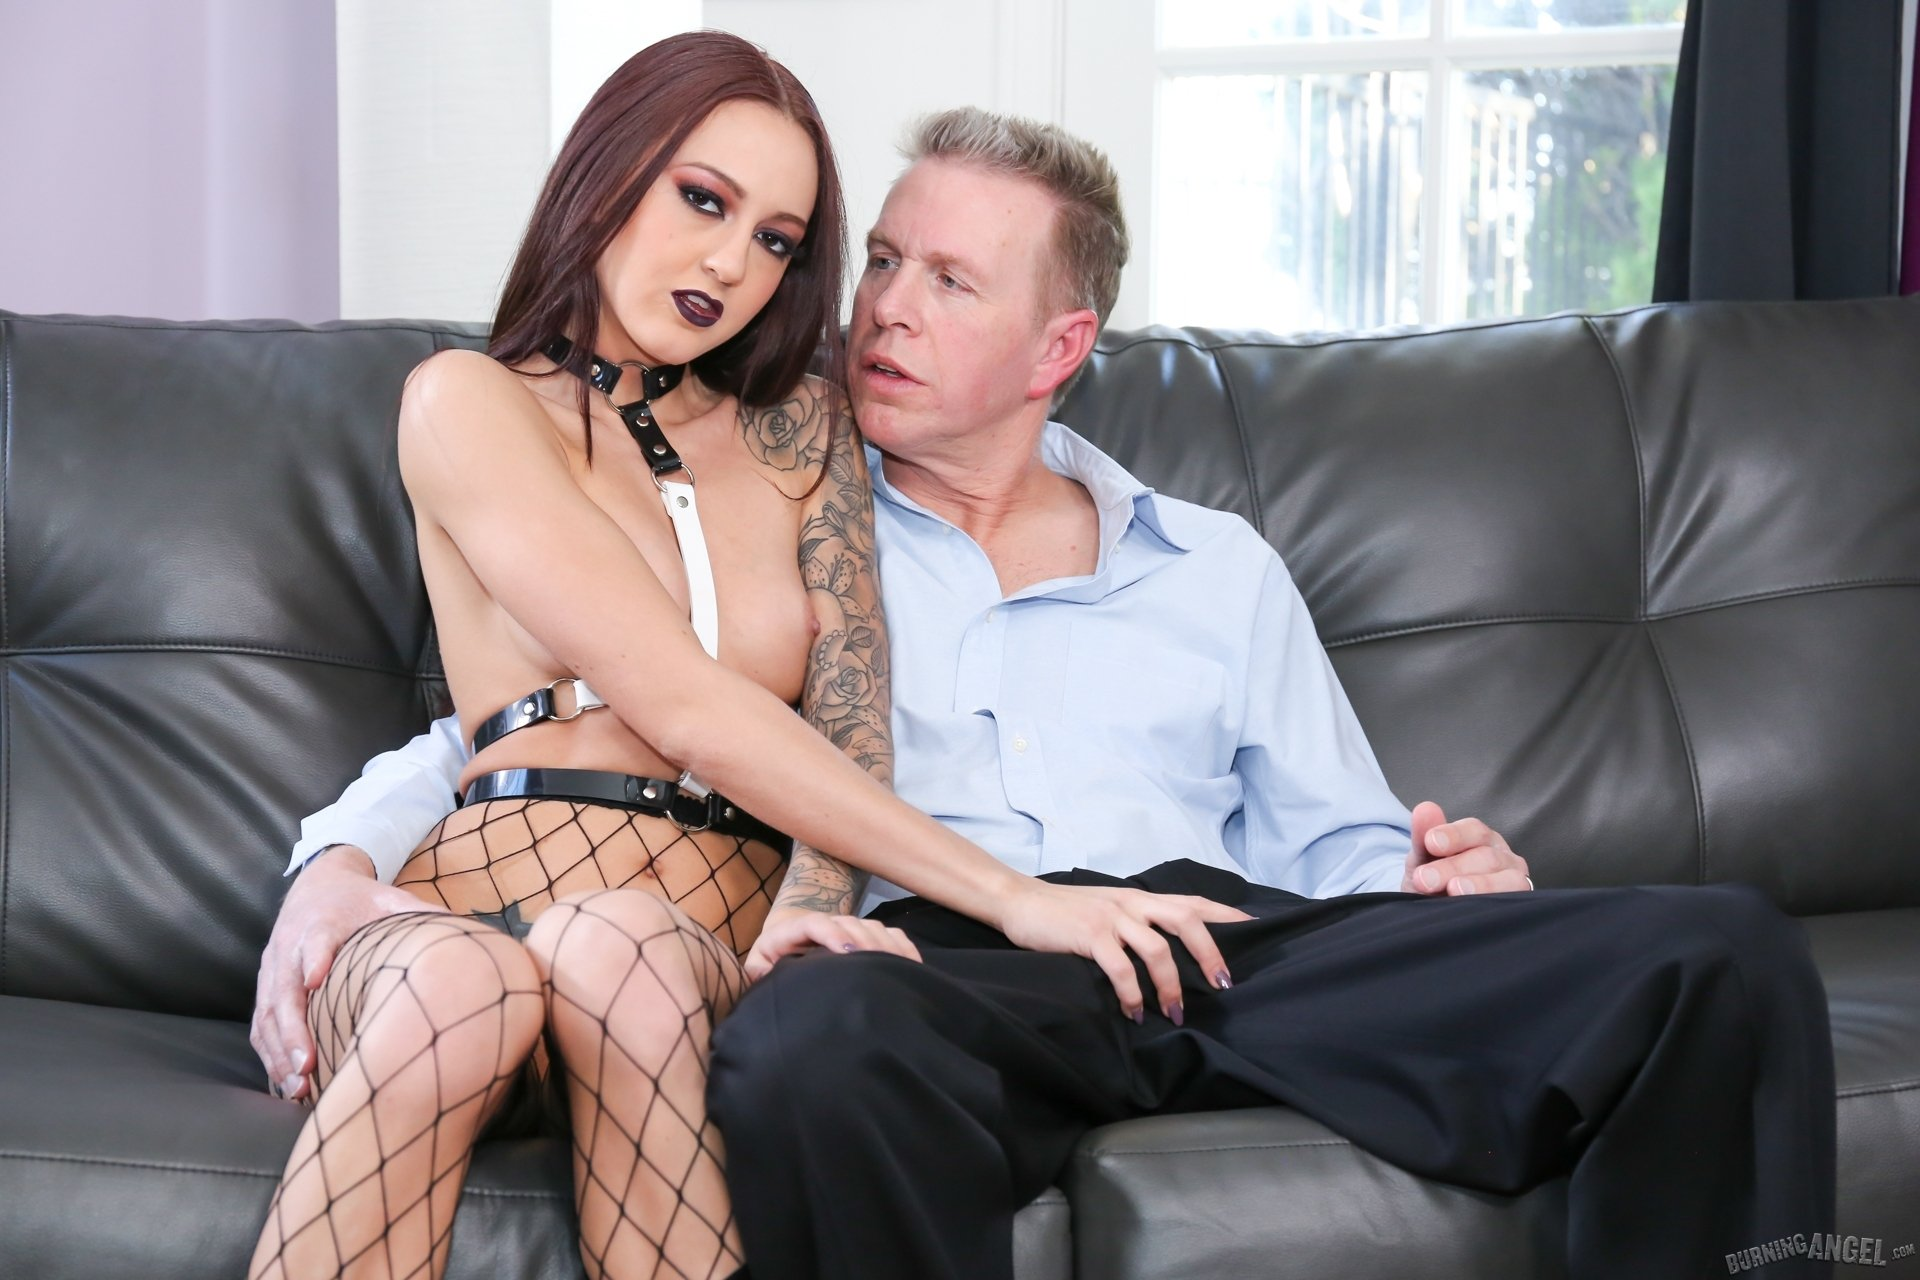 Pulling anal beads #1